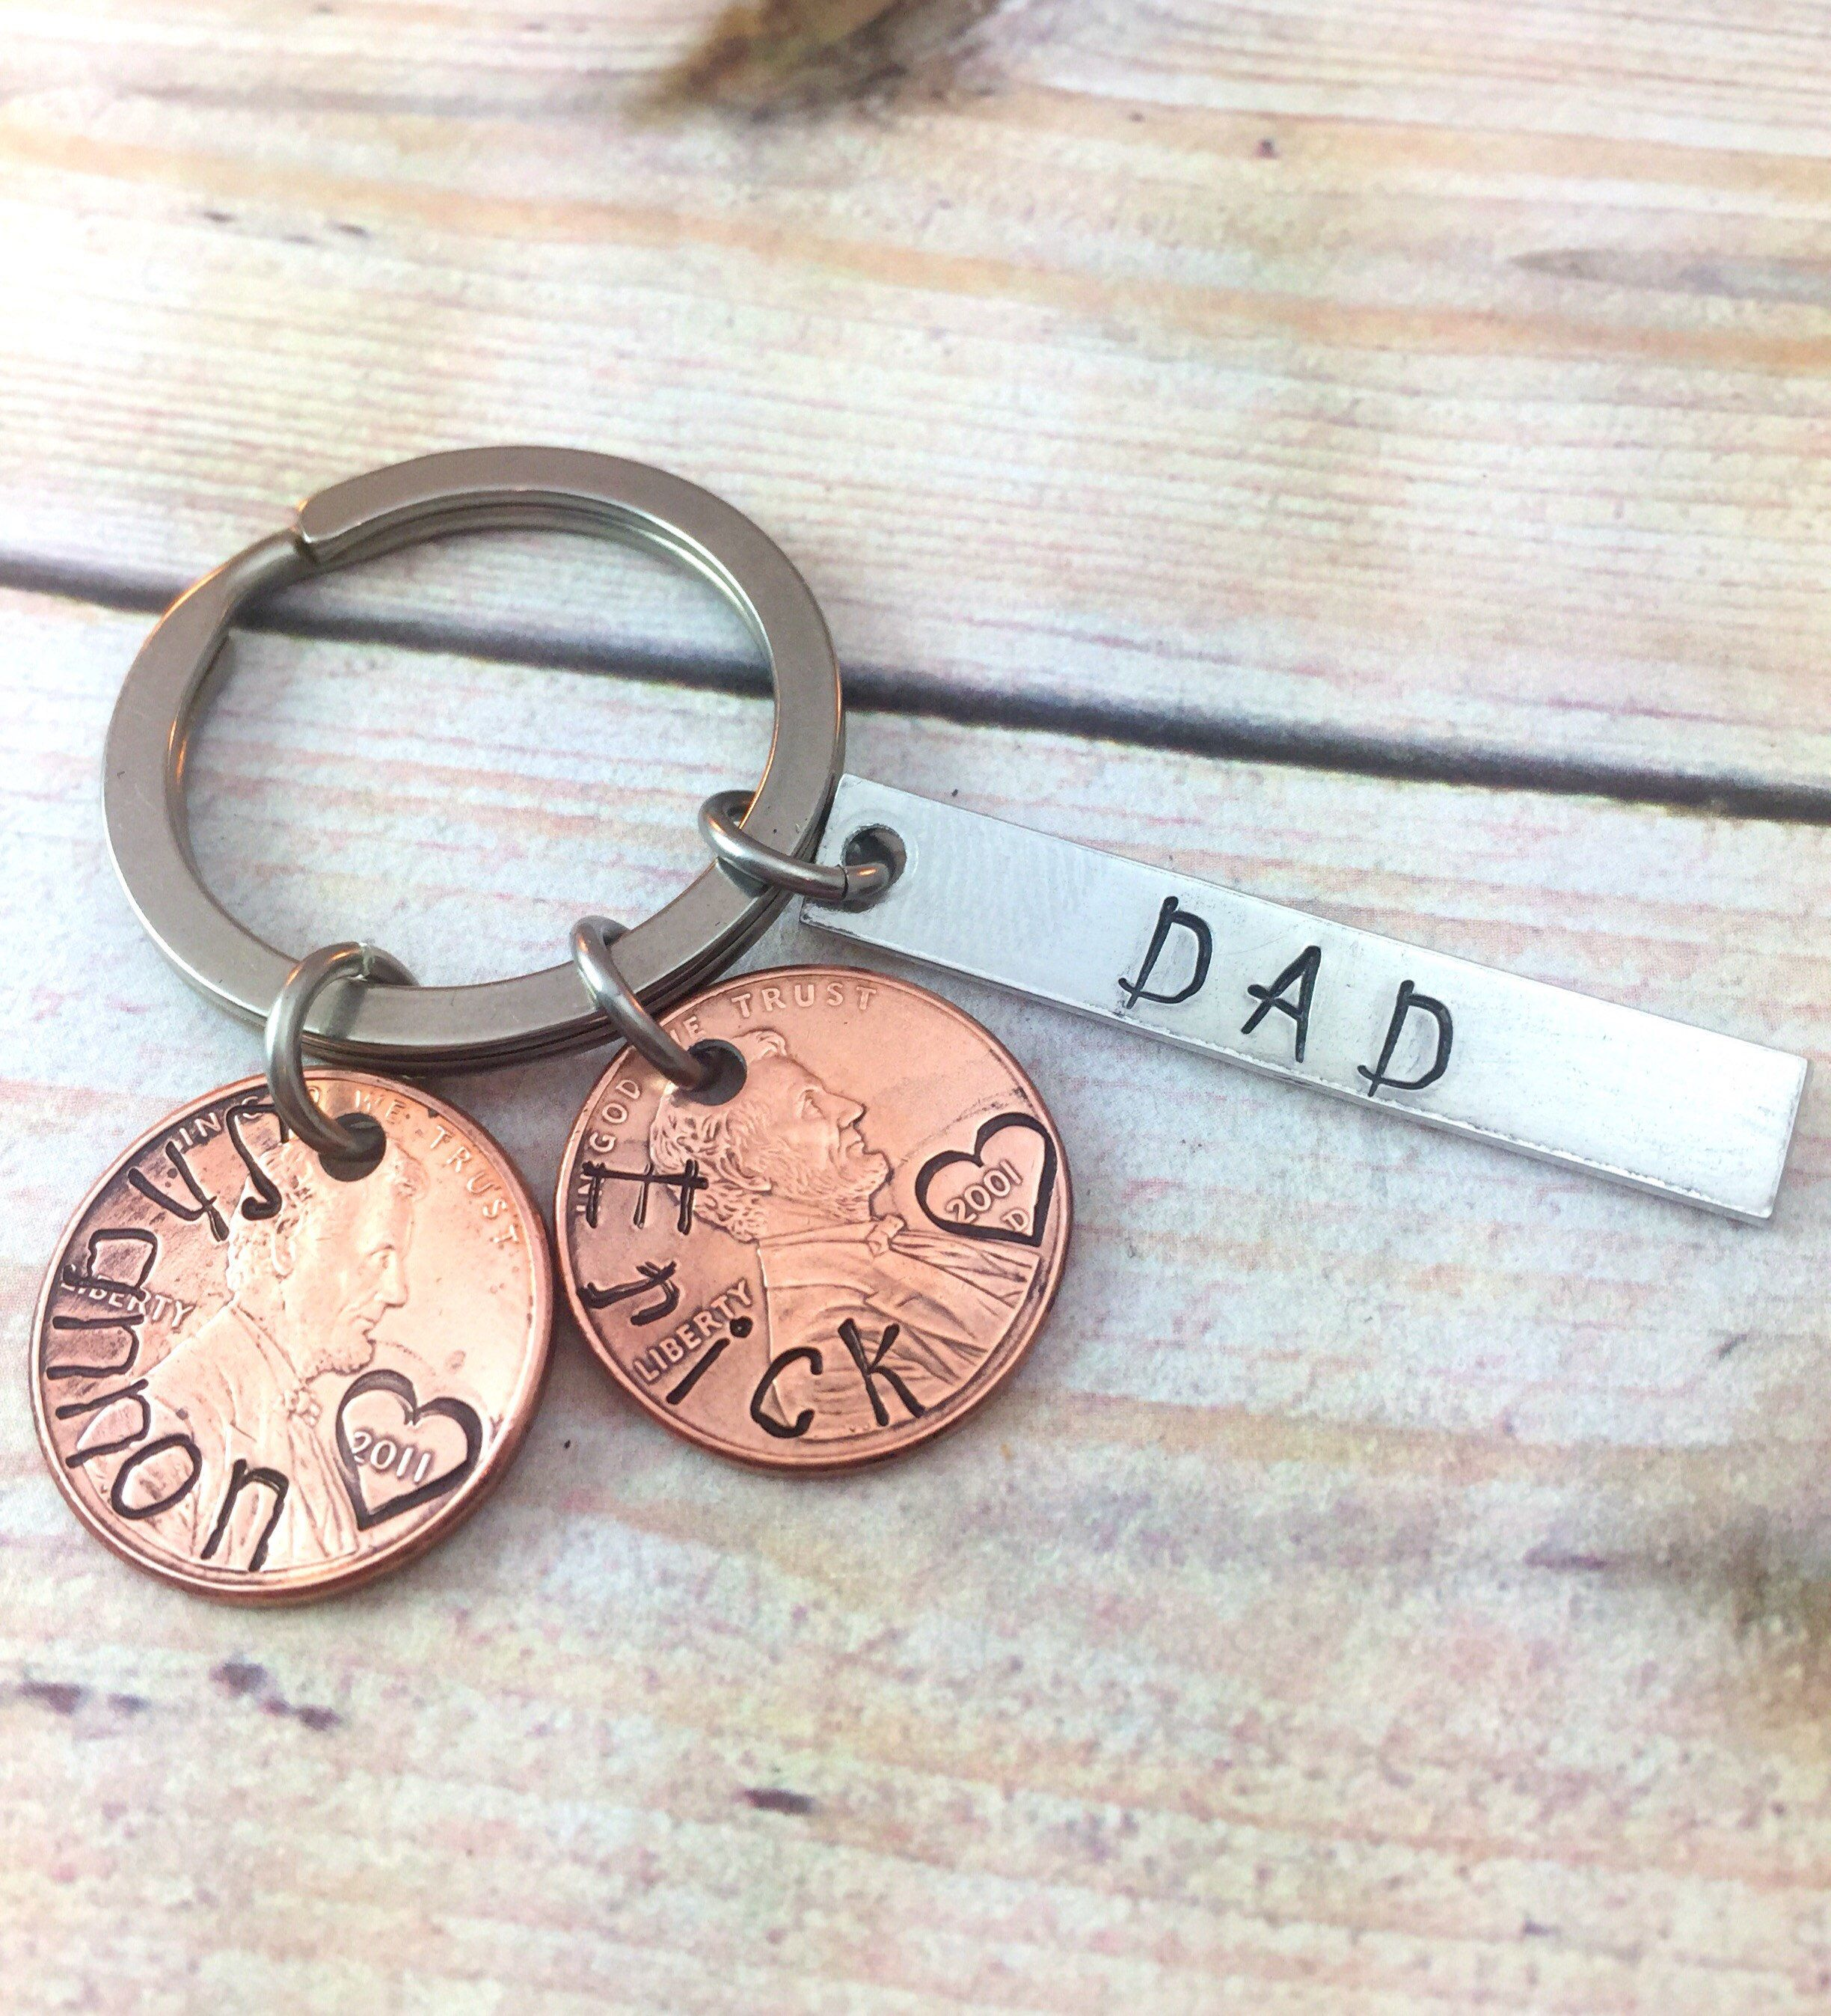 Dad penny keychain penny year keychain gift for dad gift